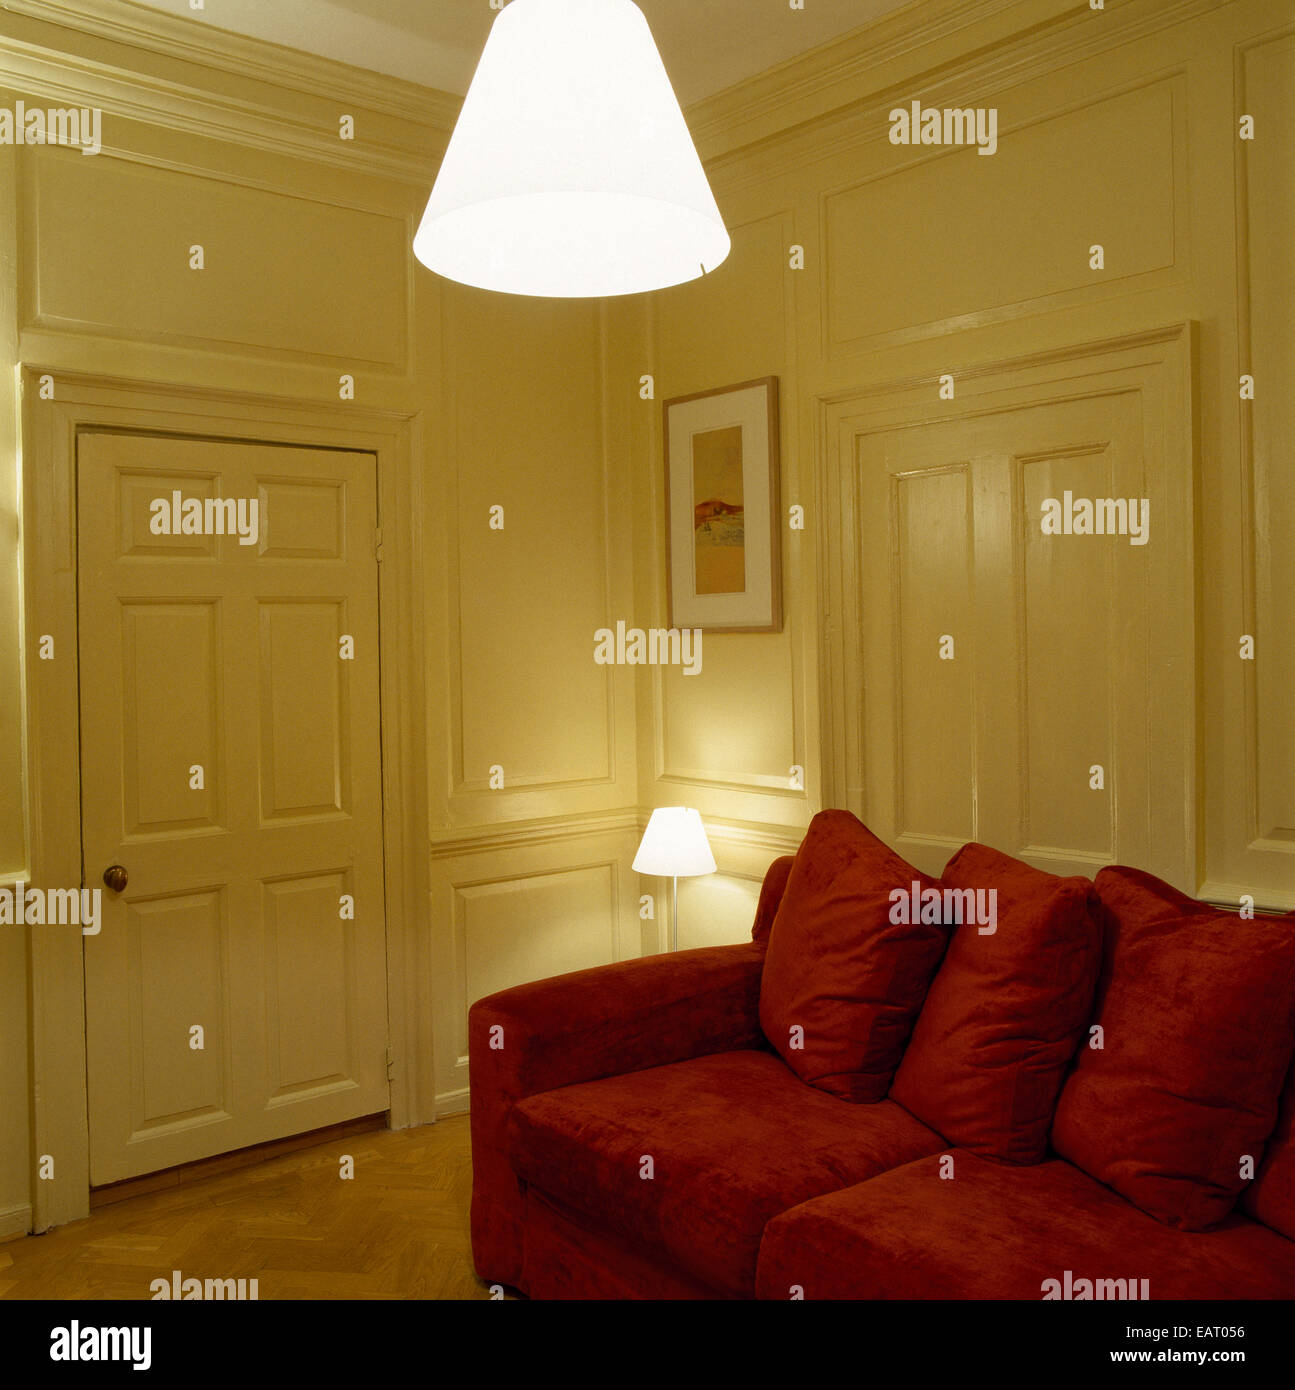 A traditional, yellow living room with wood panelled walls, red sofa ...